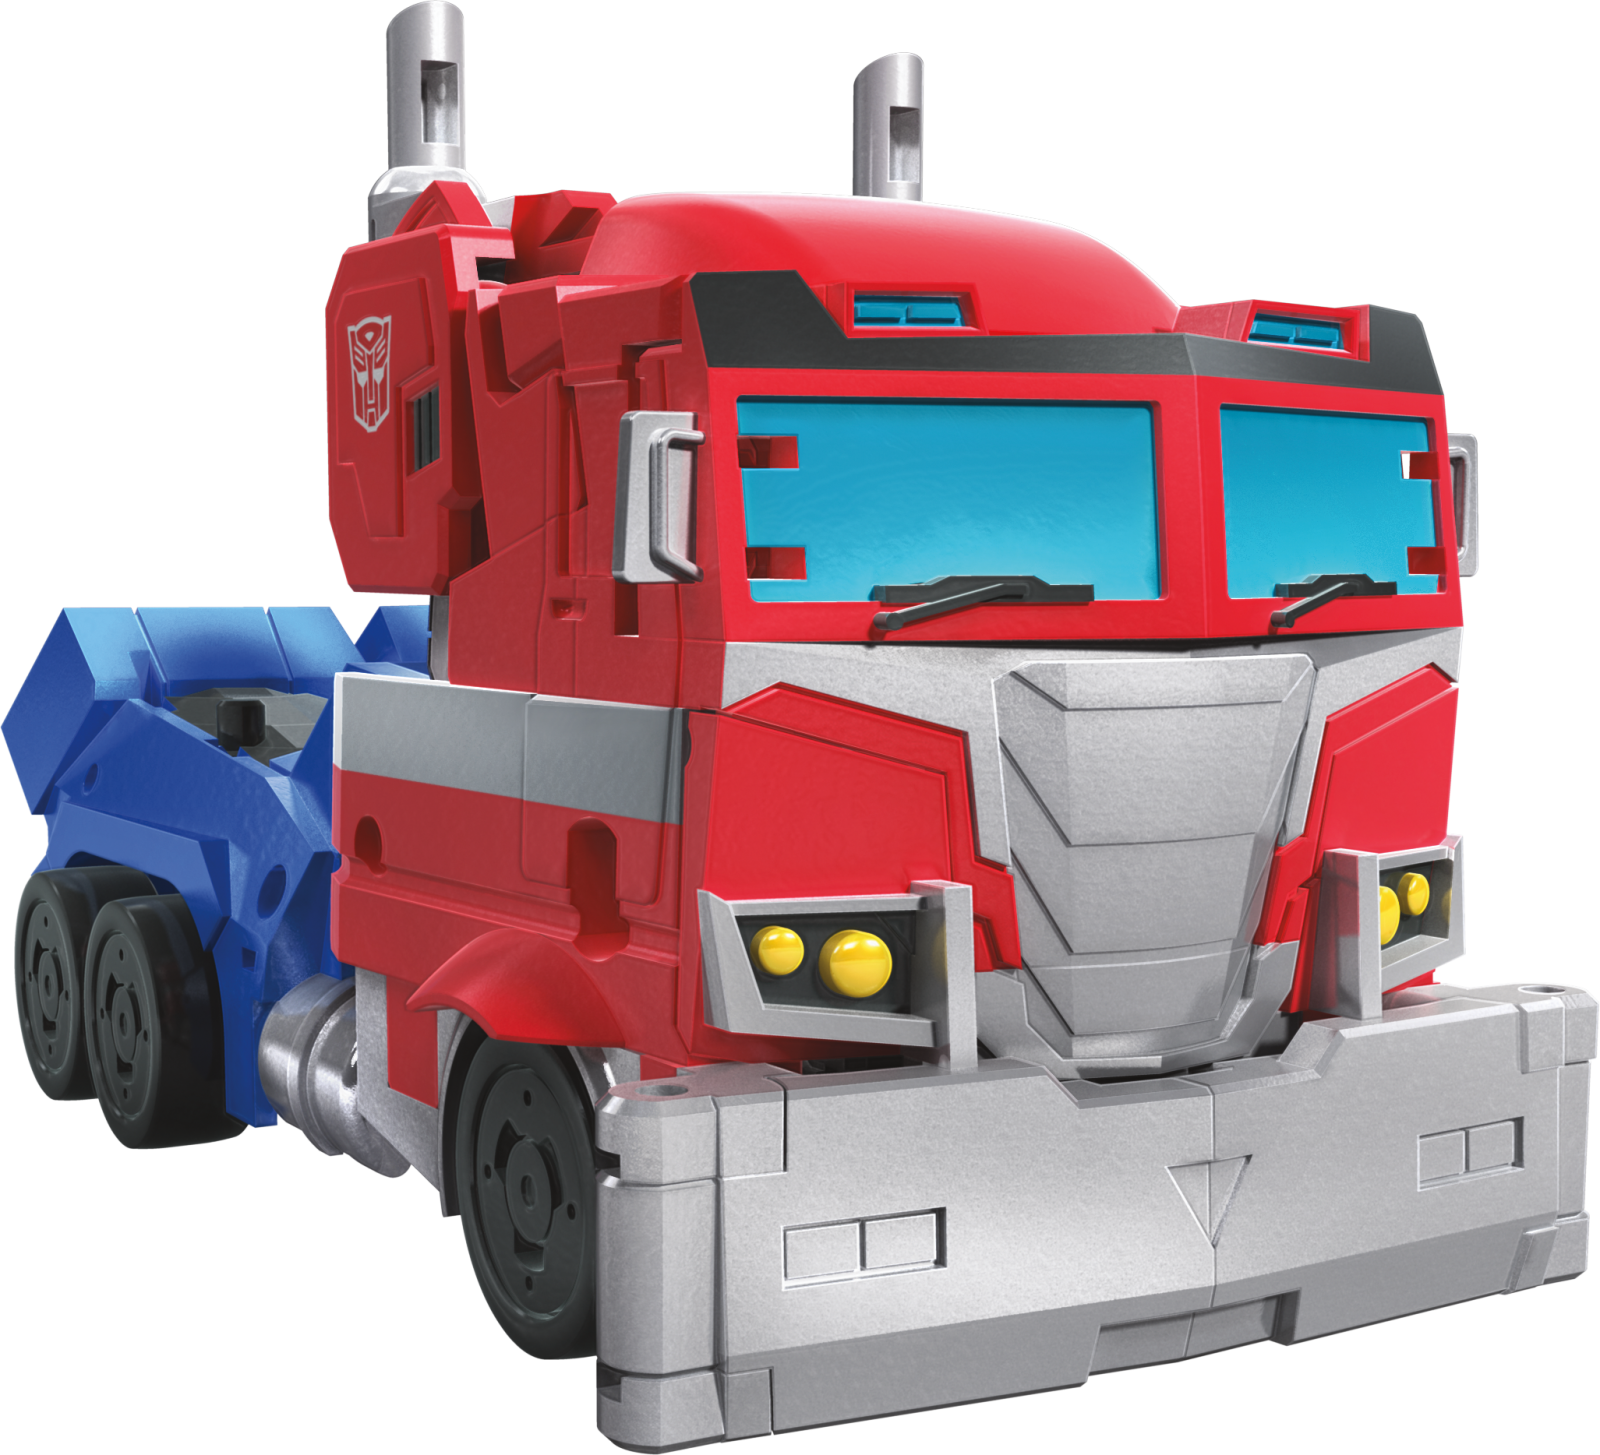 Transformers News: Official Images - Transformers Cyberverse Reveals #NYCC2019 #NYCC